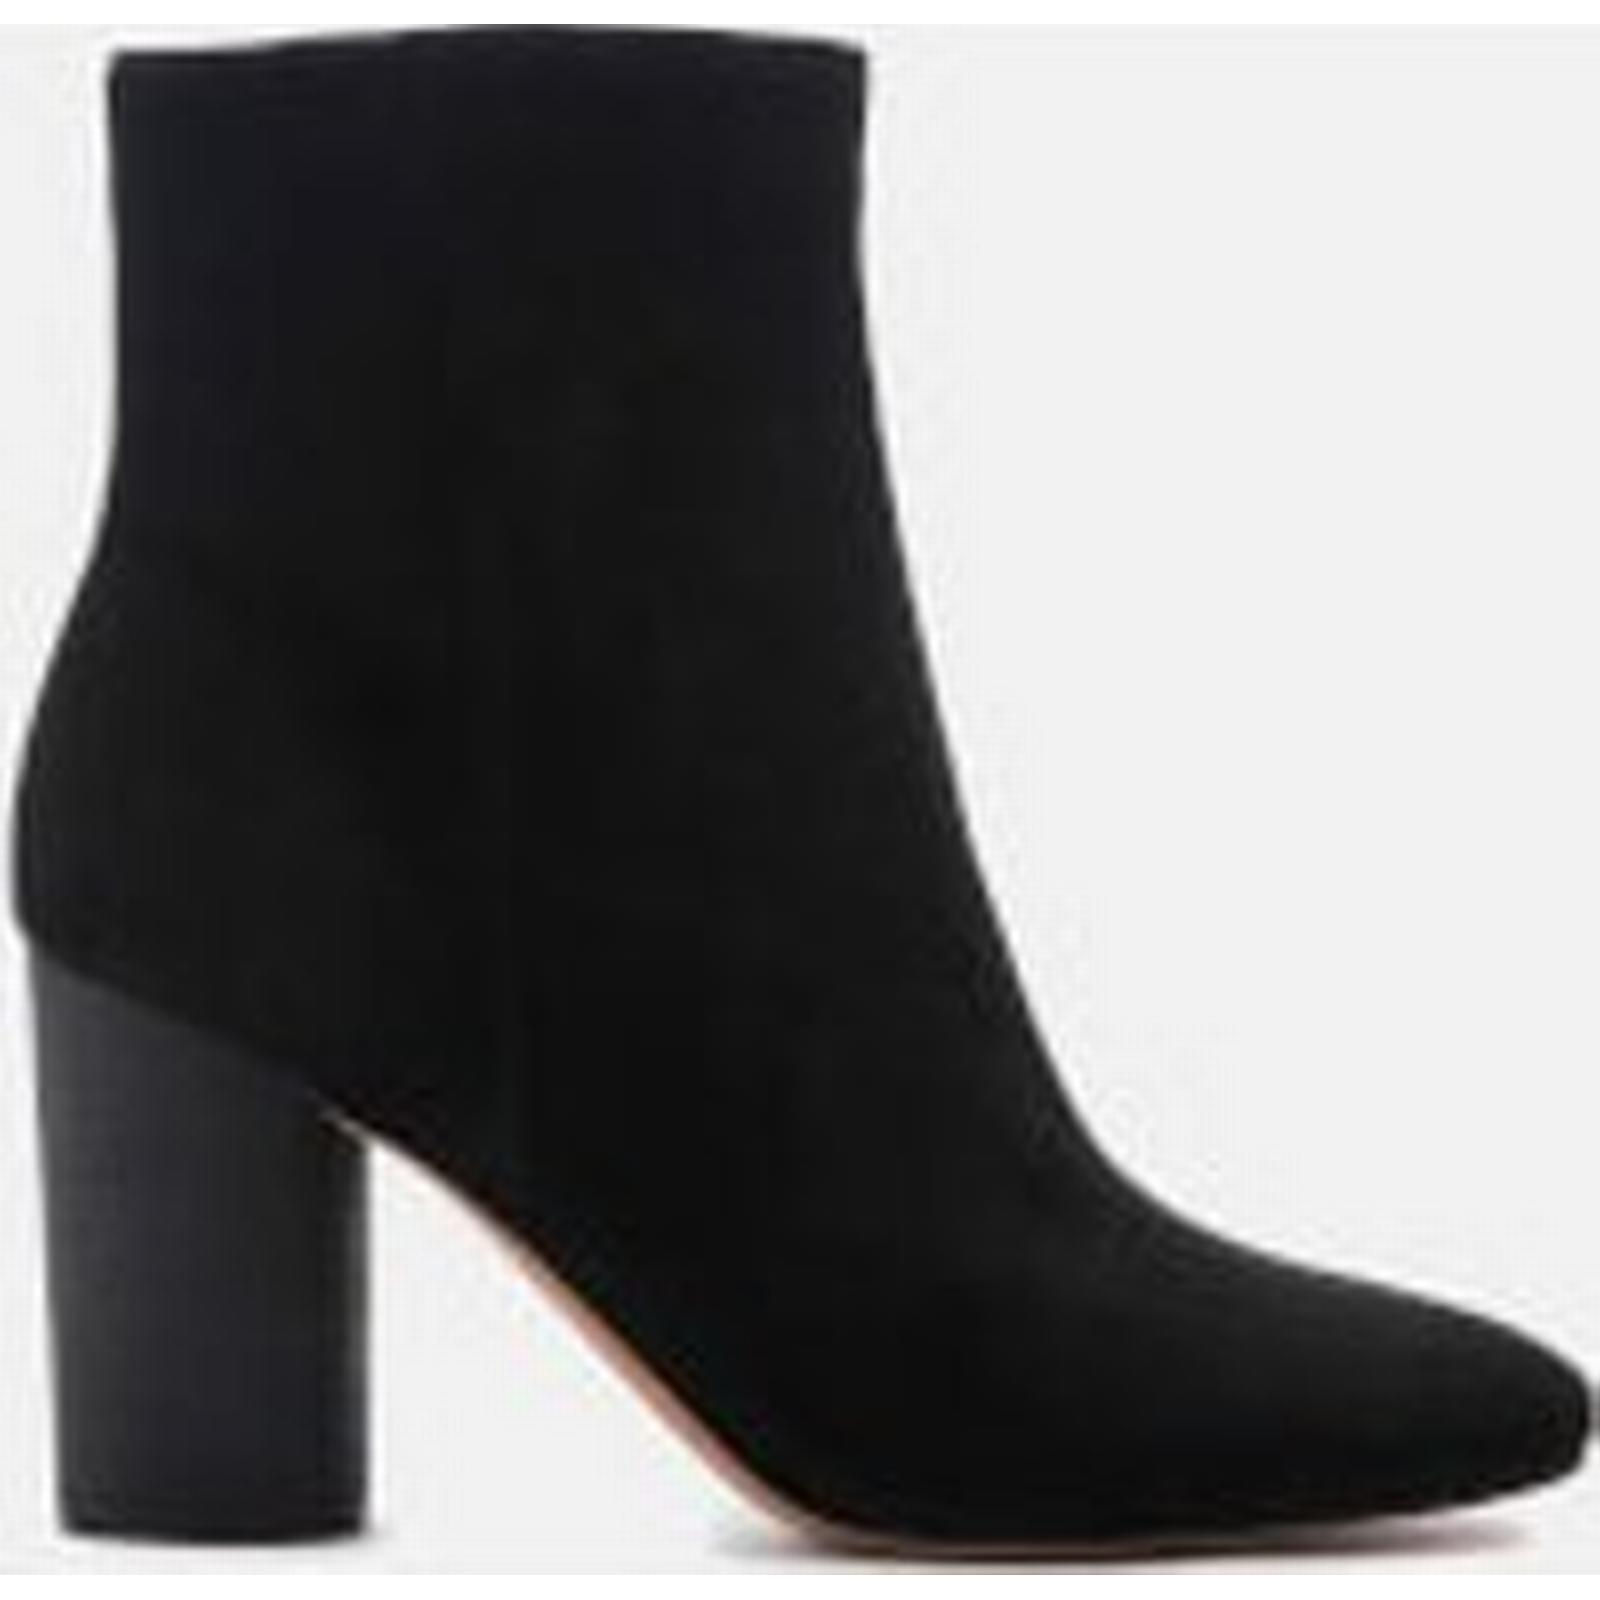 Sam Edelman Women's Corra - Suede Heeled Ankle Boots - Corra Black - US 9/UK 7 - Black 817049